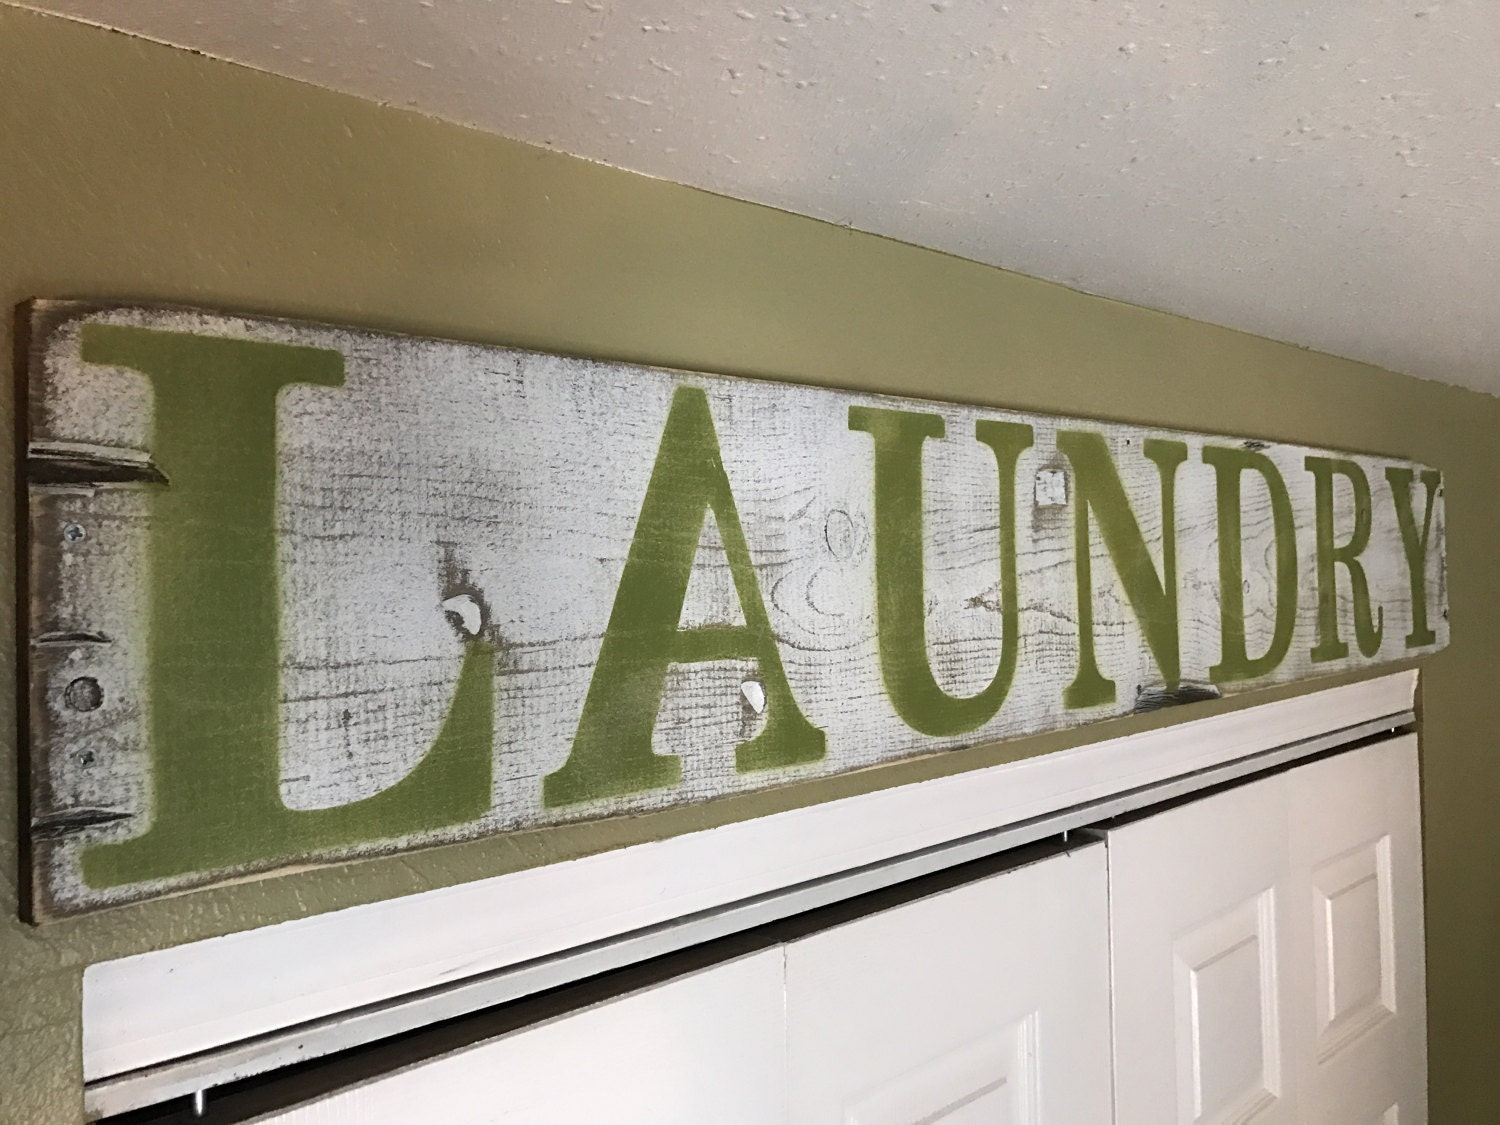 Laundry Room Wooden Signs Laundry Room Decor Laundry Decor Laundry Signs Laundry Room